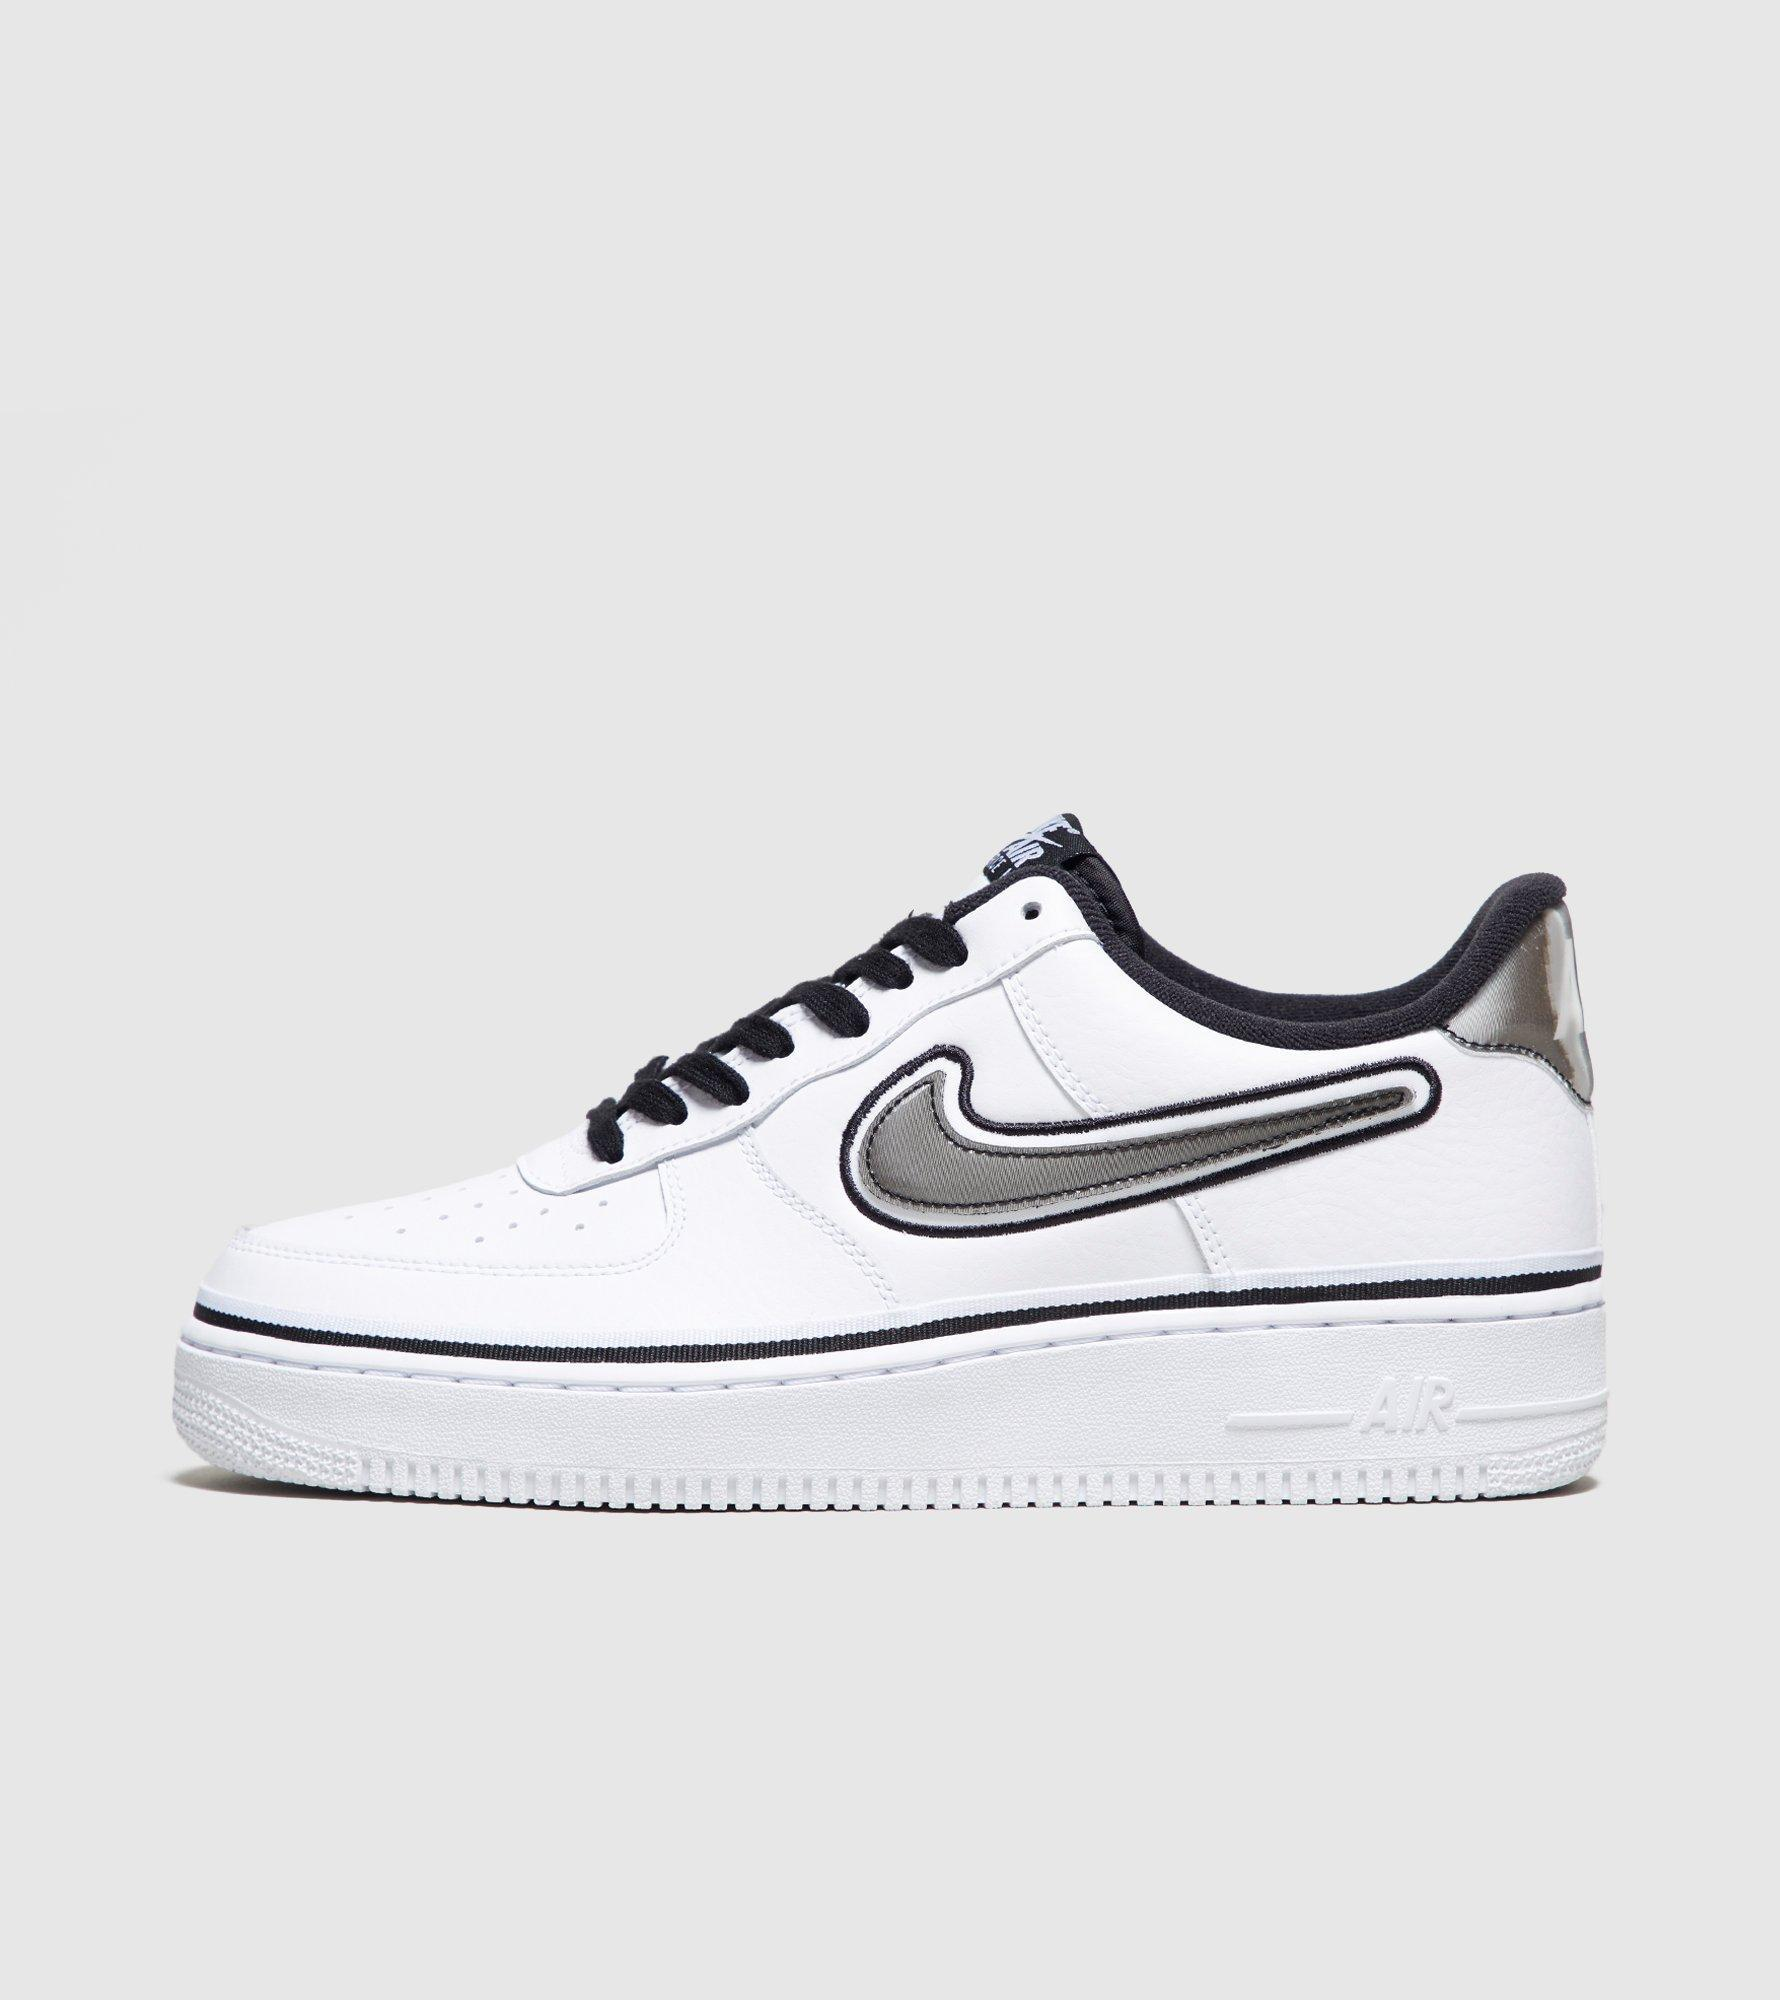 Nike Air Force 1 Low  07 Lv8  nba  in White for Men - Lyst 9f00f6dfe